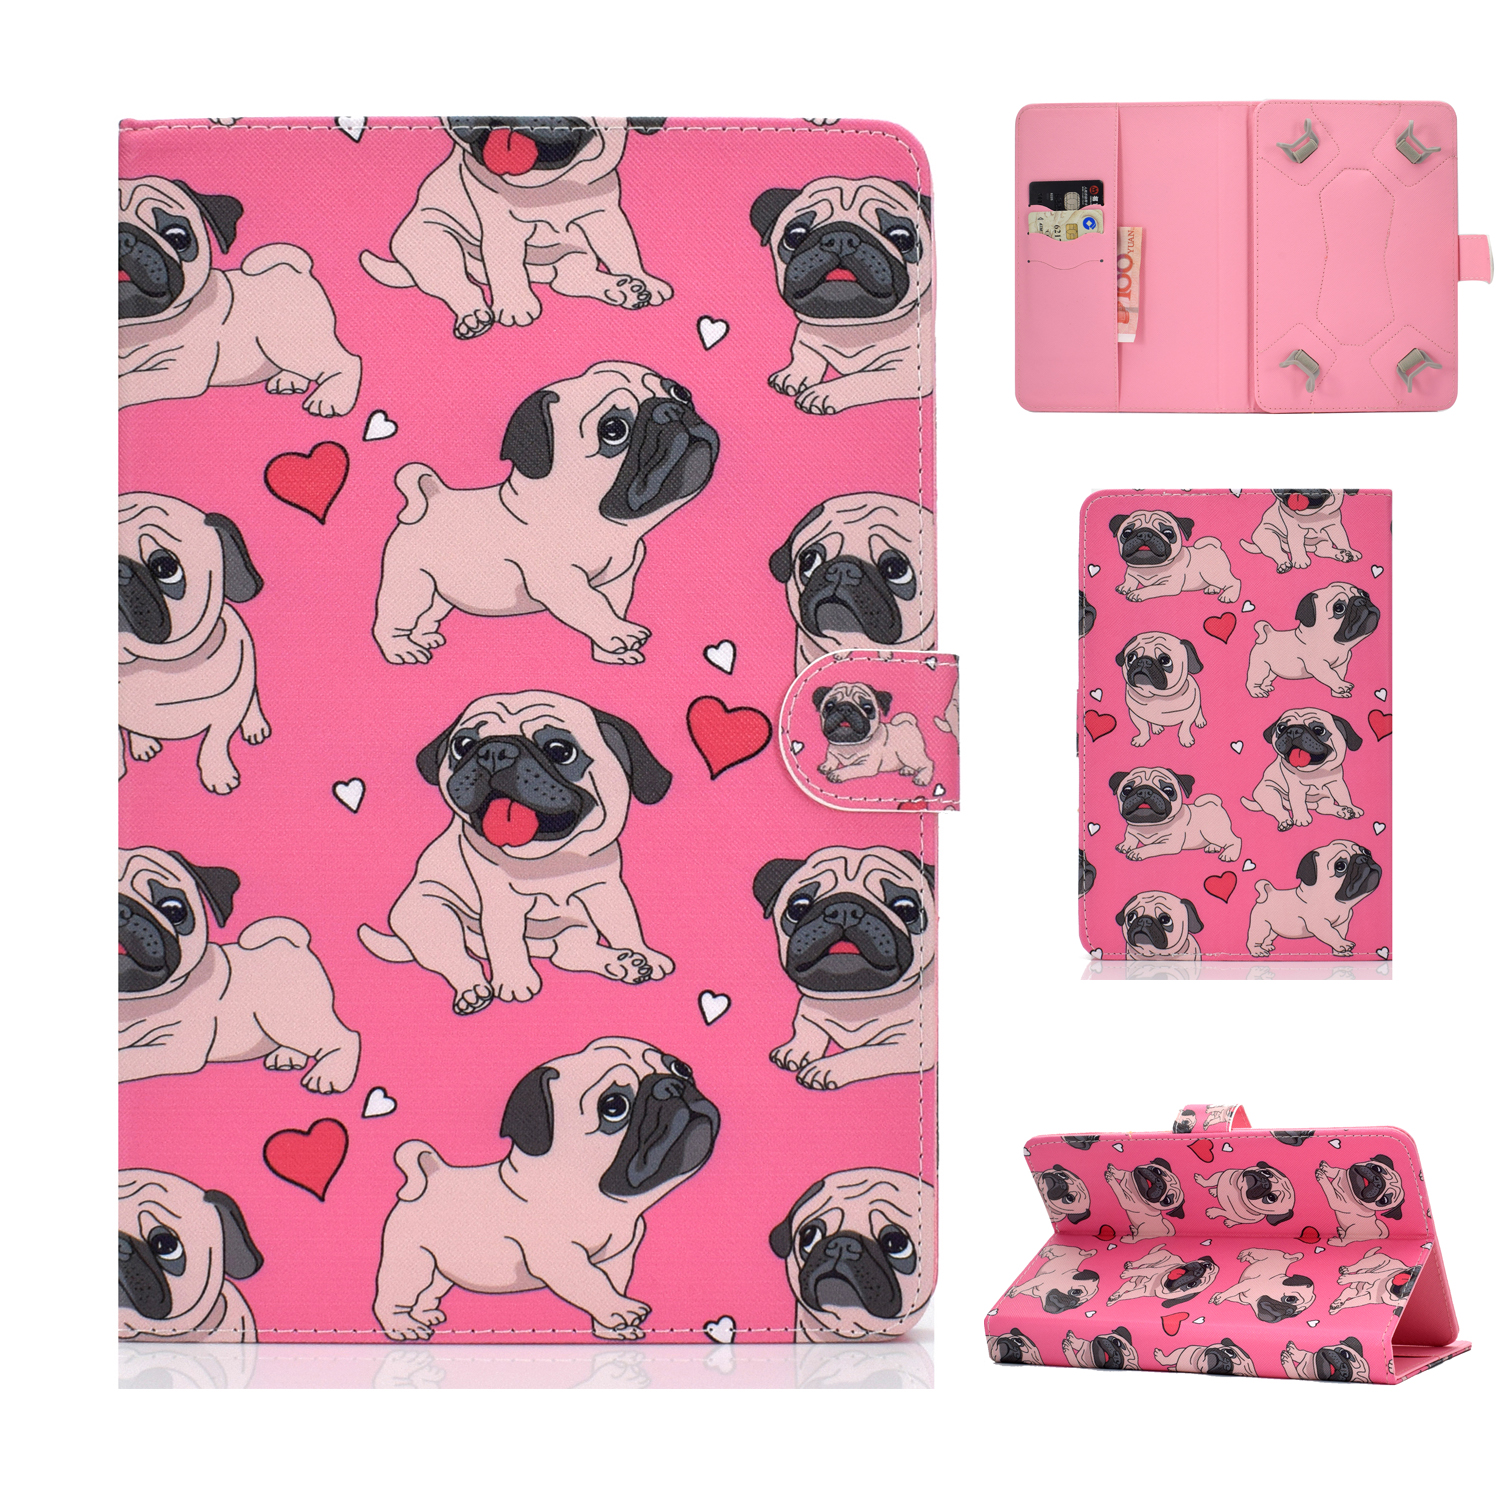 Universal Laptop Protective Cover Color Painted 8 Inches PU Case with Front Snap Caring dog